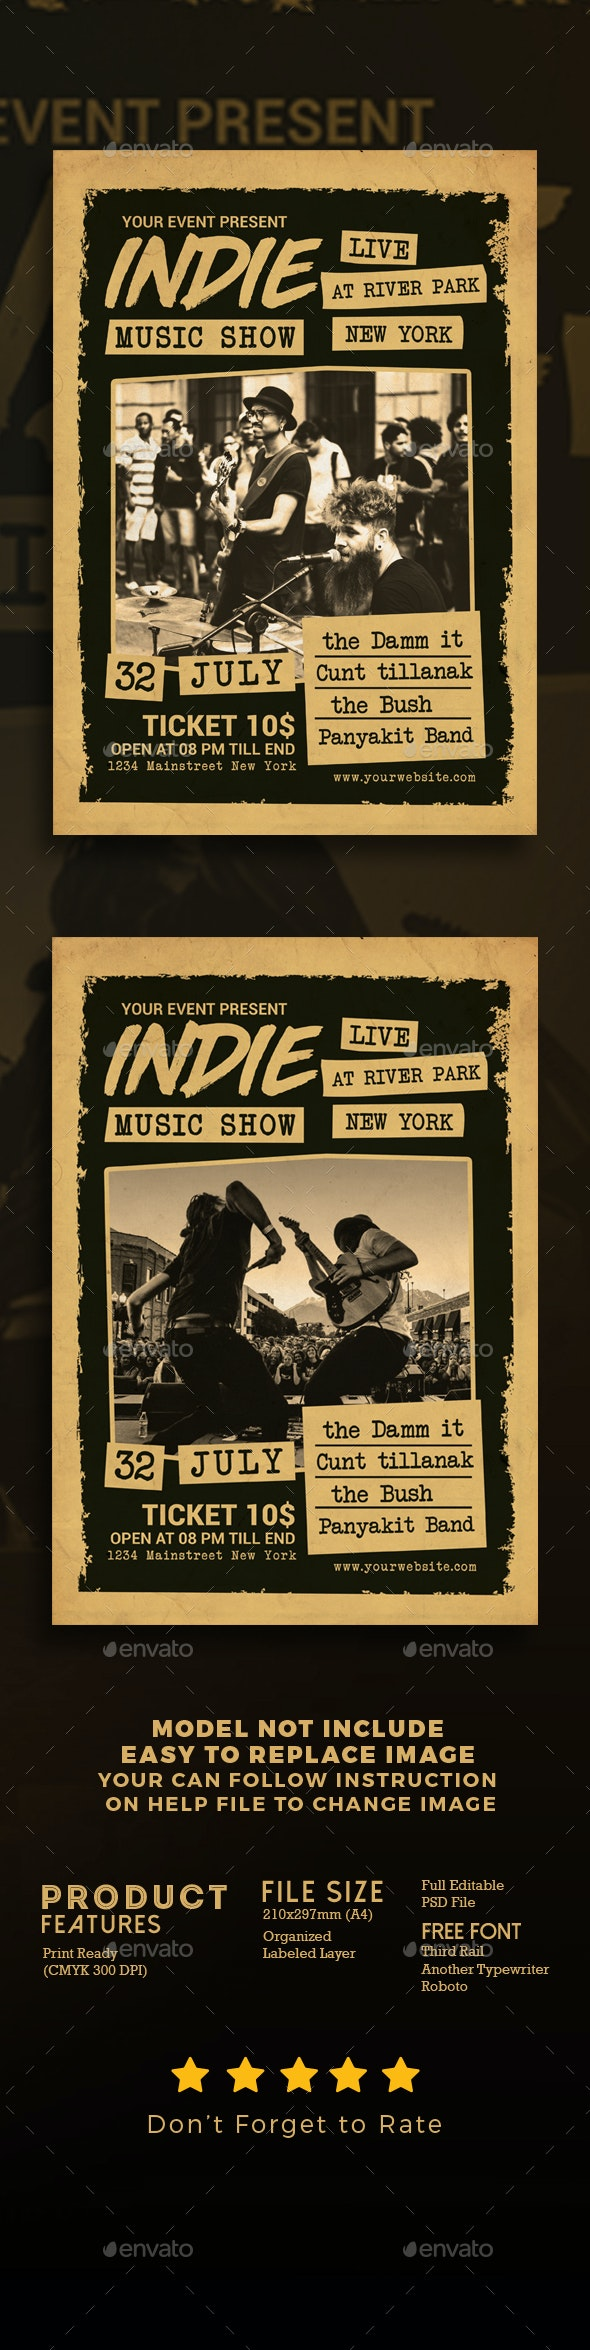 Indie Music Show Flyer - Events Flyers